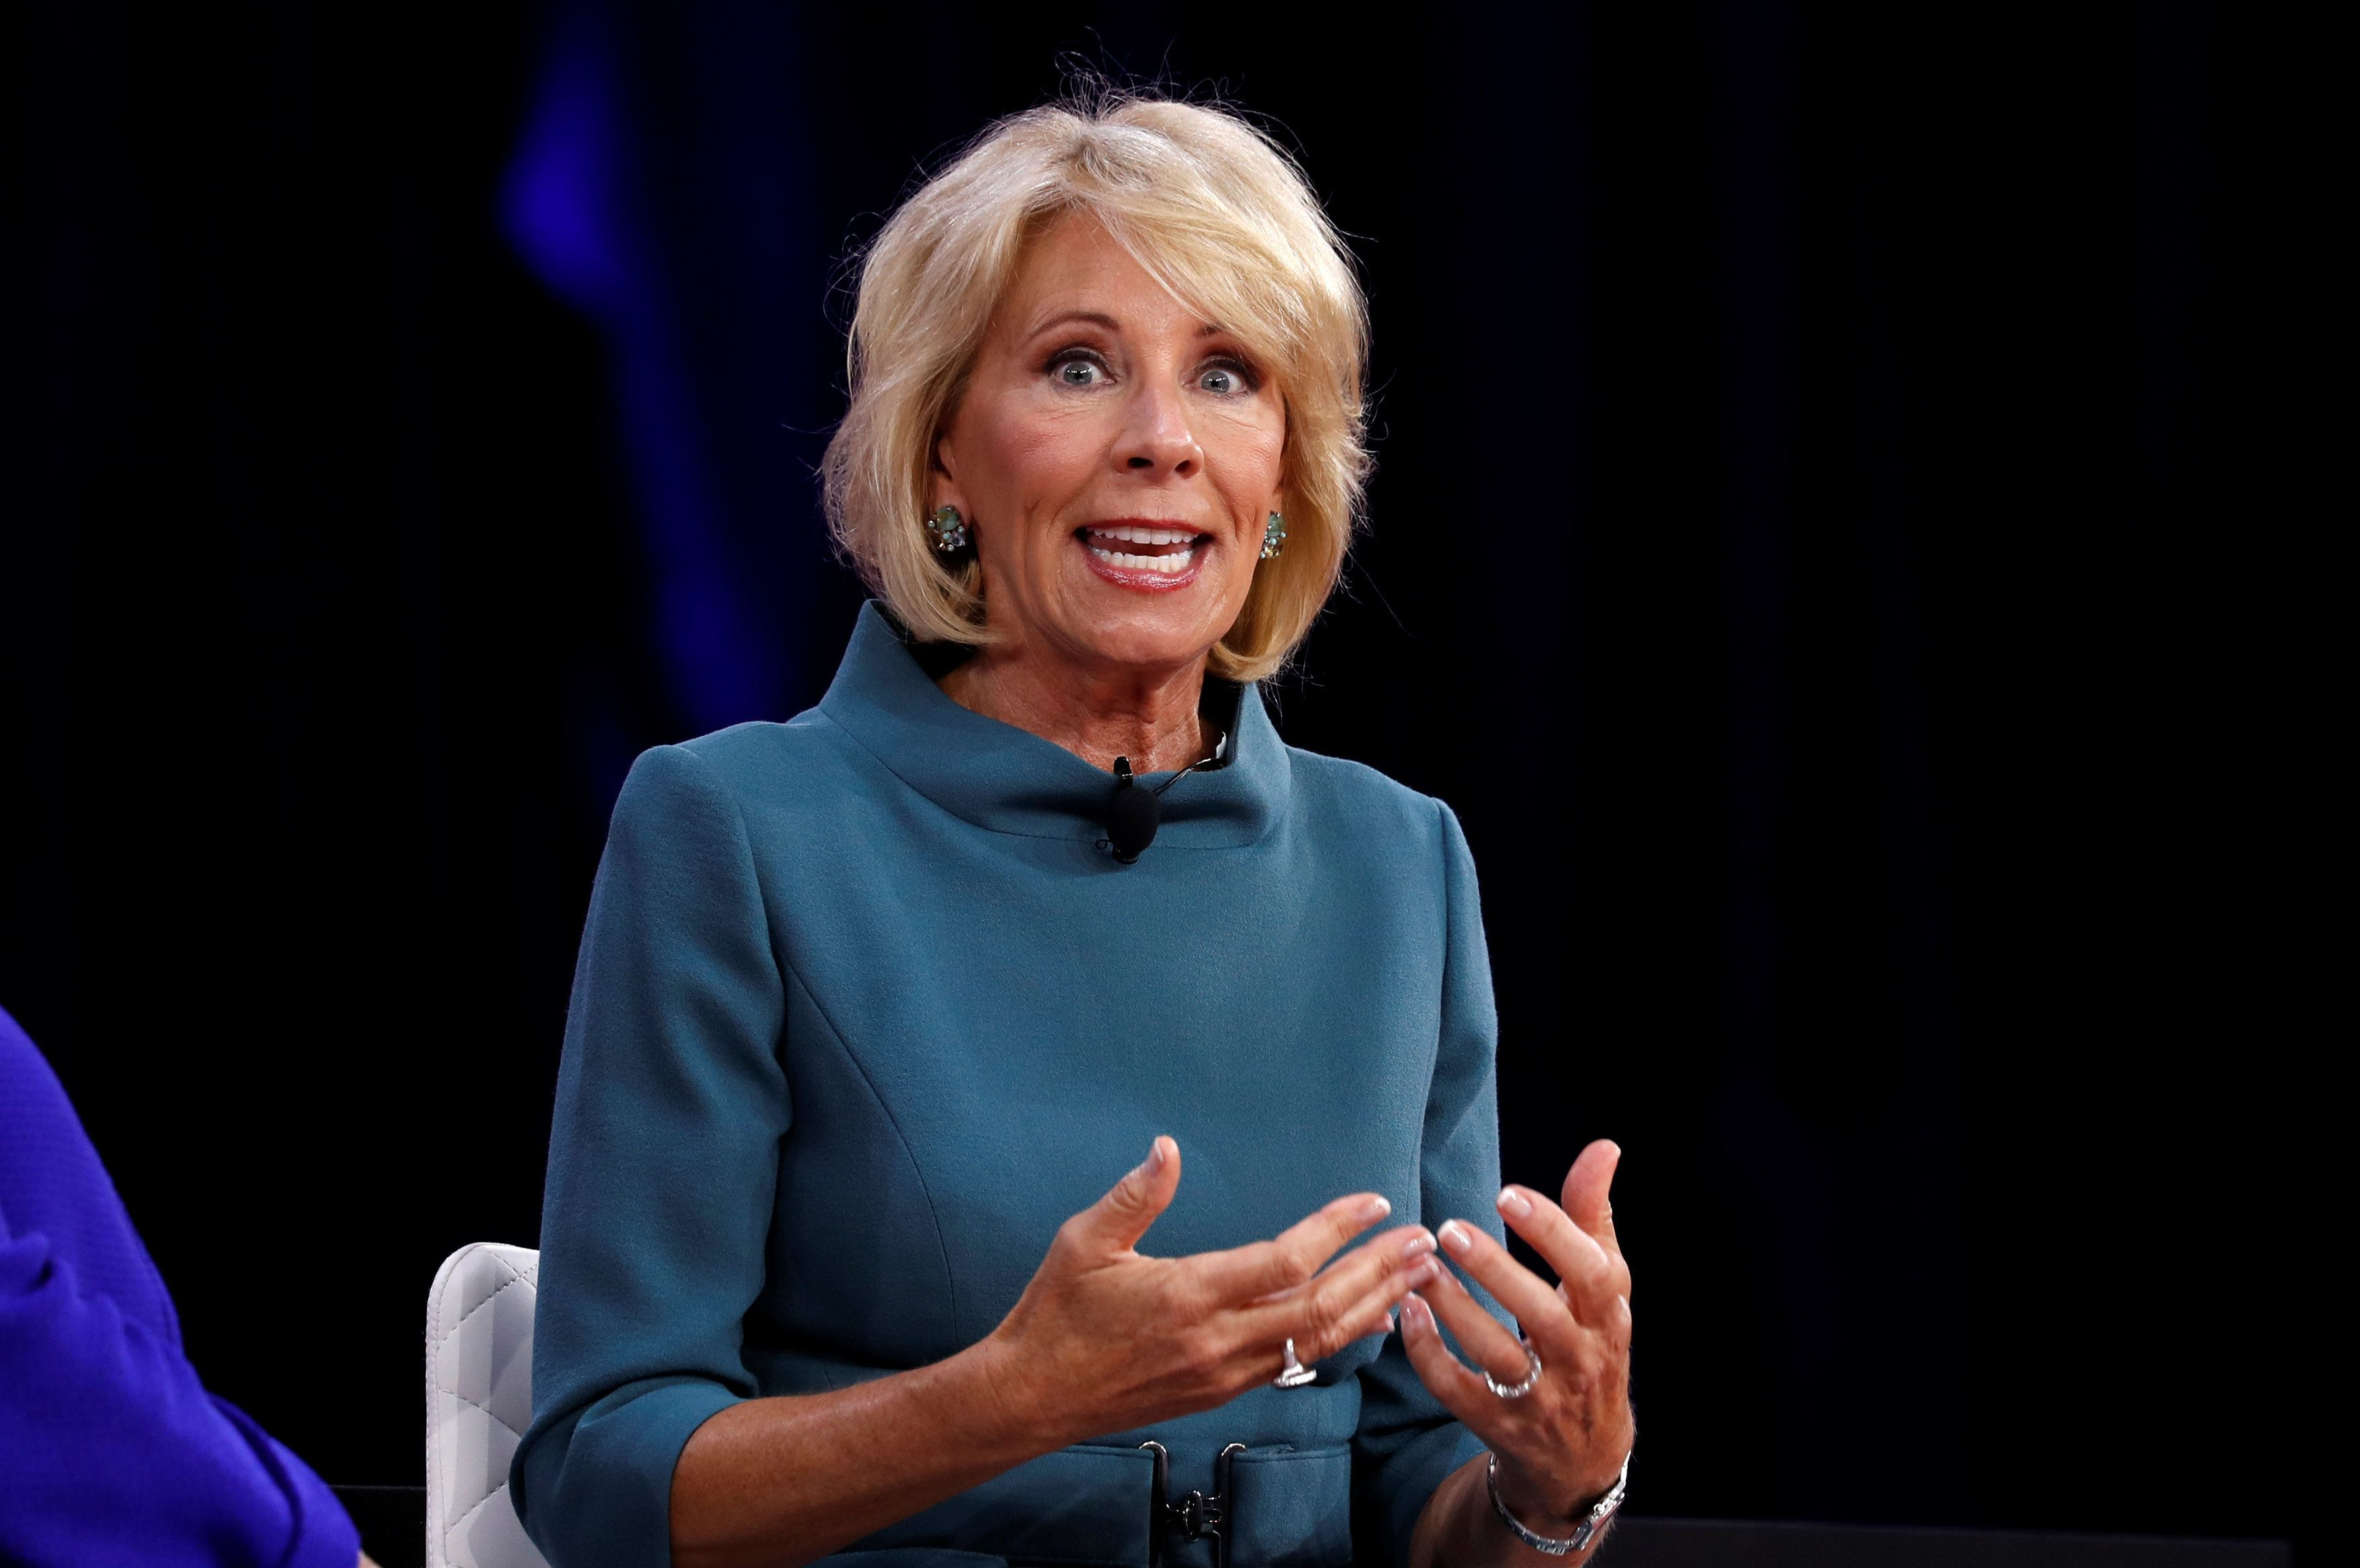 Education Secretary Betsy DeVos speaks at the Conservative Political Action Conference (CPAC) at National Harbor, Maryland,  U.S., February 22, 2018.  REUTERS/Kevin Lamarque